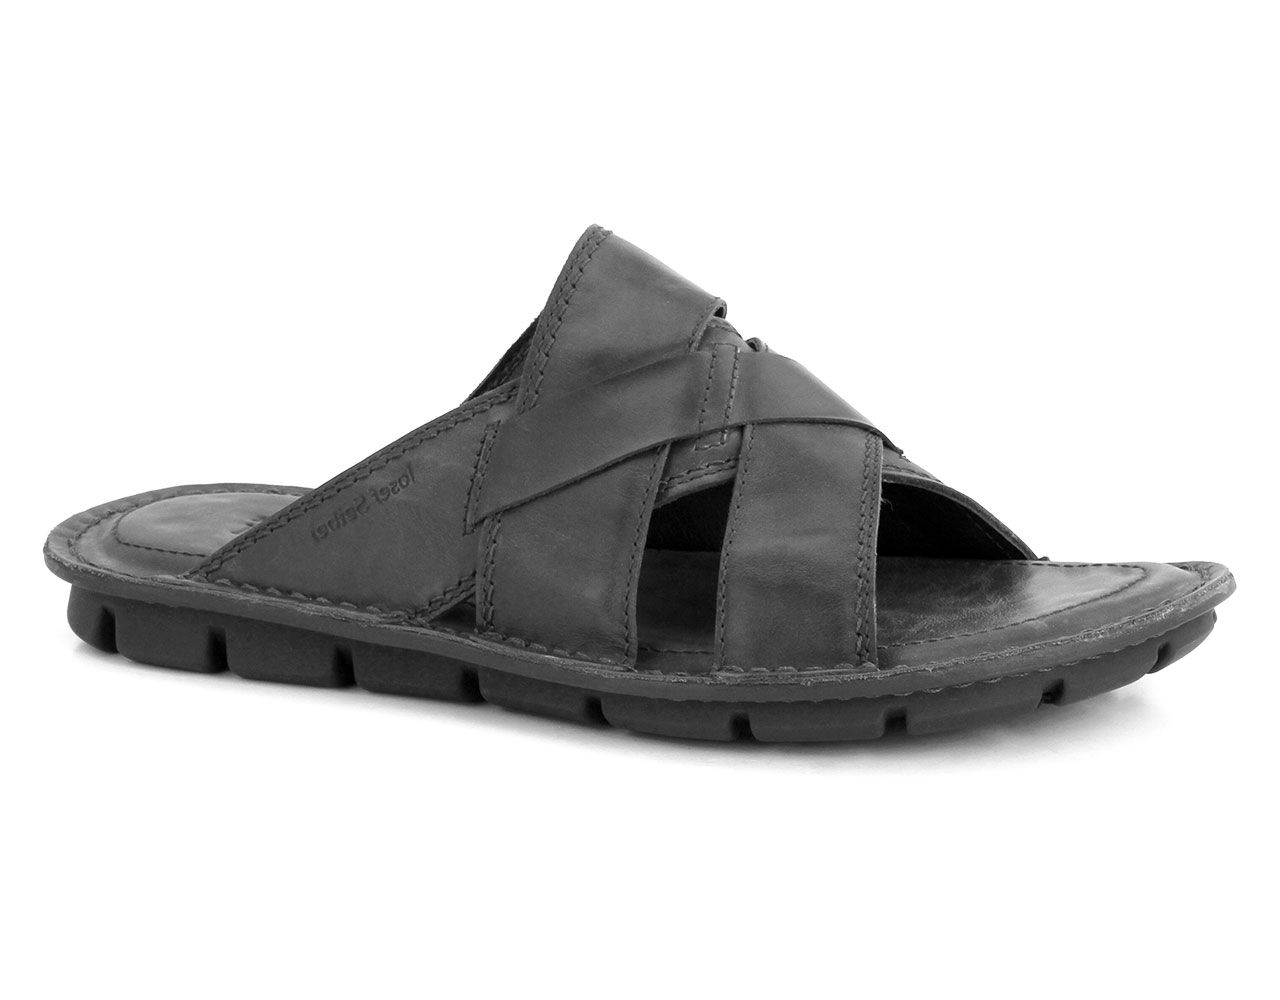 3695f1418796 Fashionable men s sandals usually lack any sort of comfort